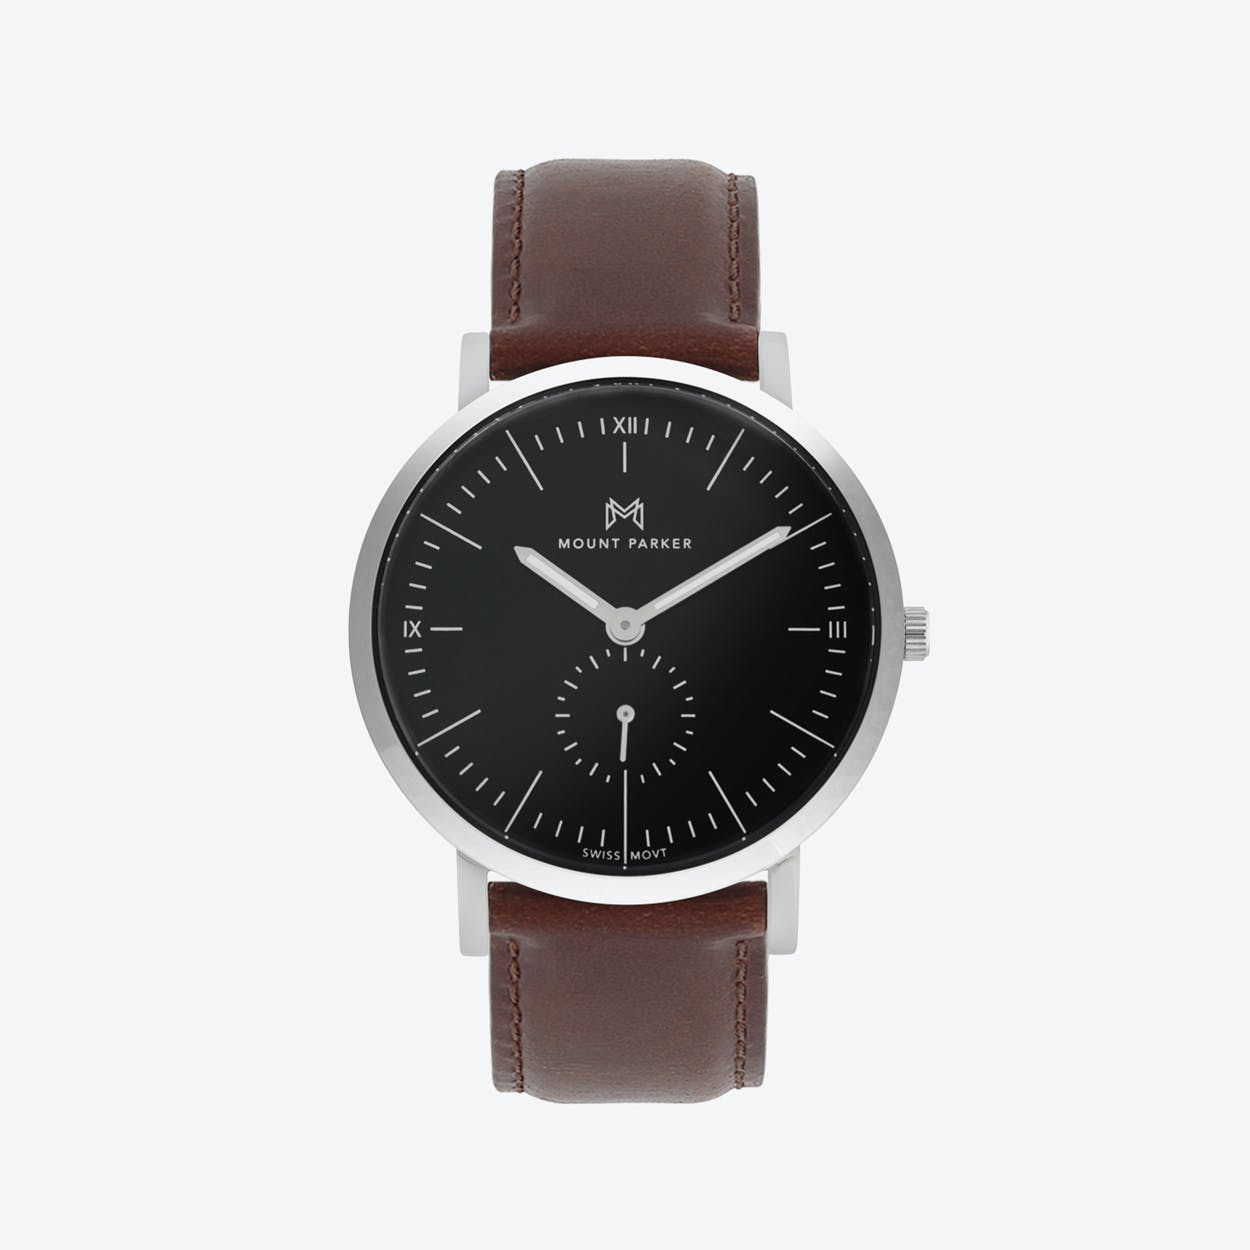 ODYSSEY Watch Glacier Silver with Black Face and Brown Leather Strap, 40mm